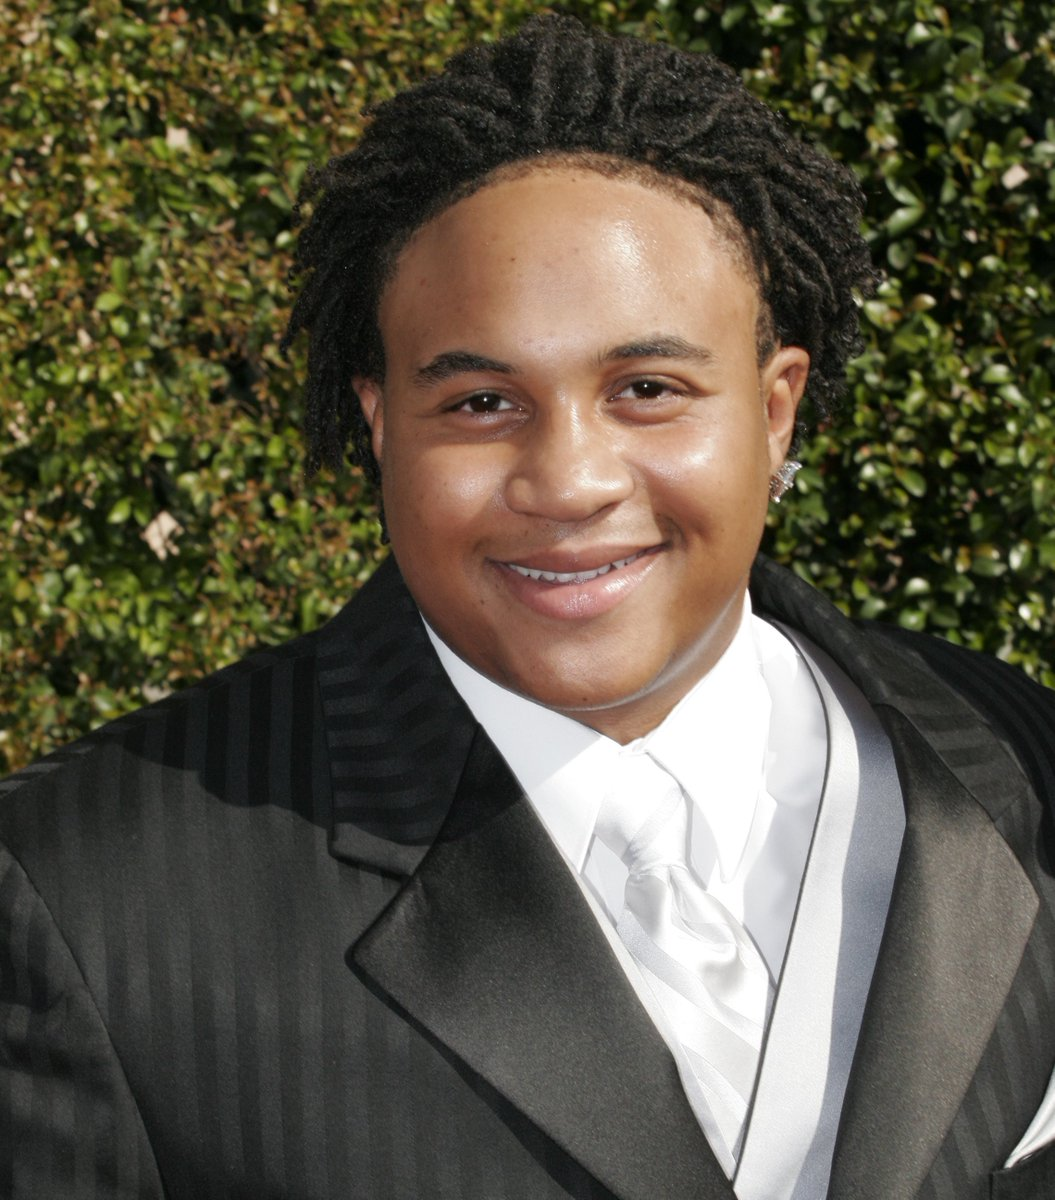 Orlando Brown has checked into rehab for substance abuse and mental health issues https://t.co/LnE1mnflN0